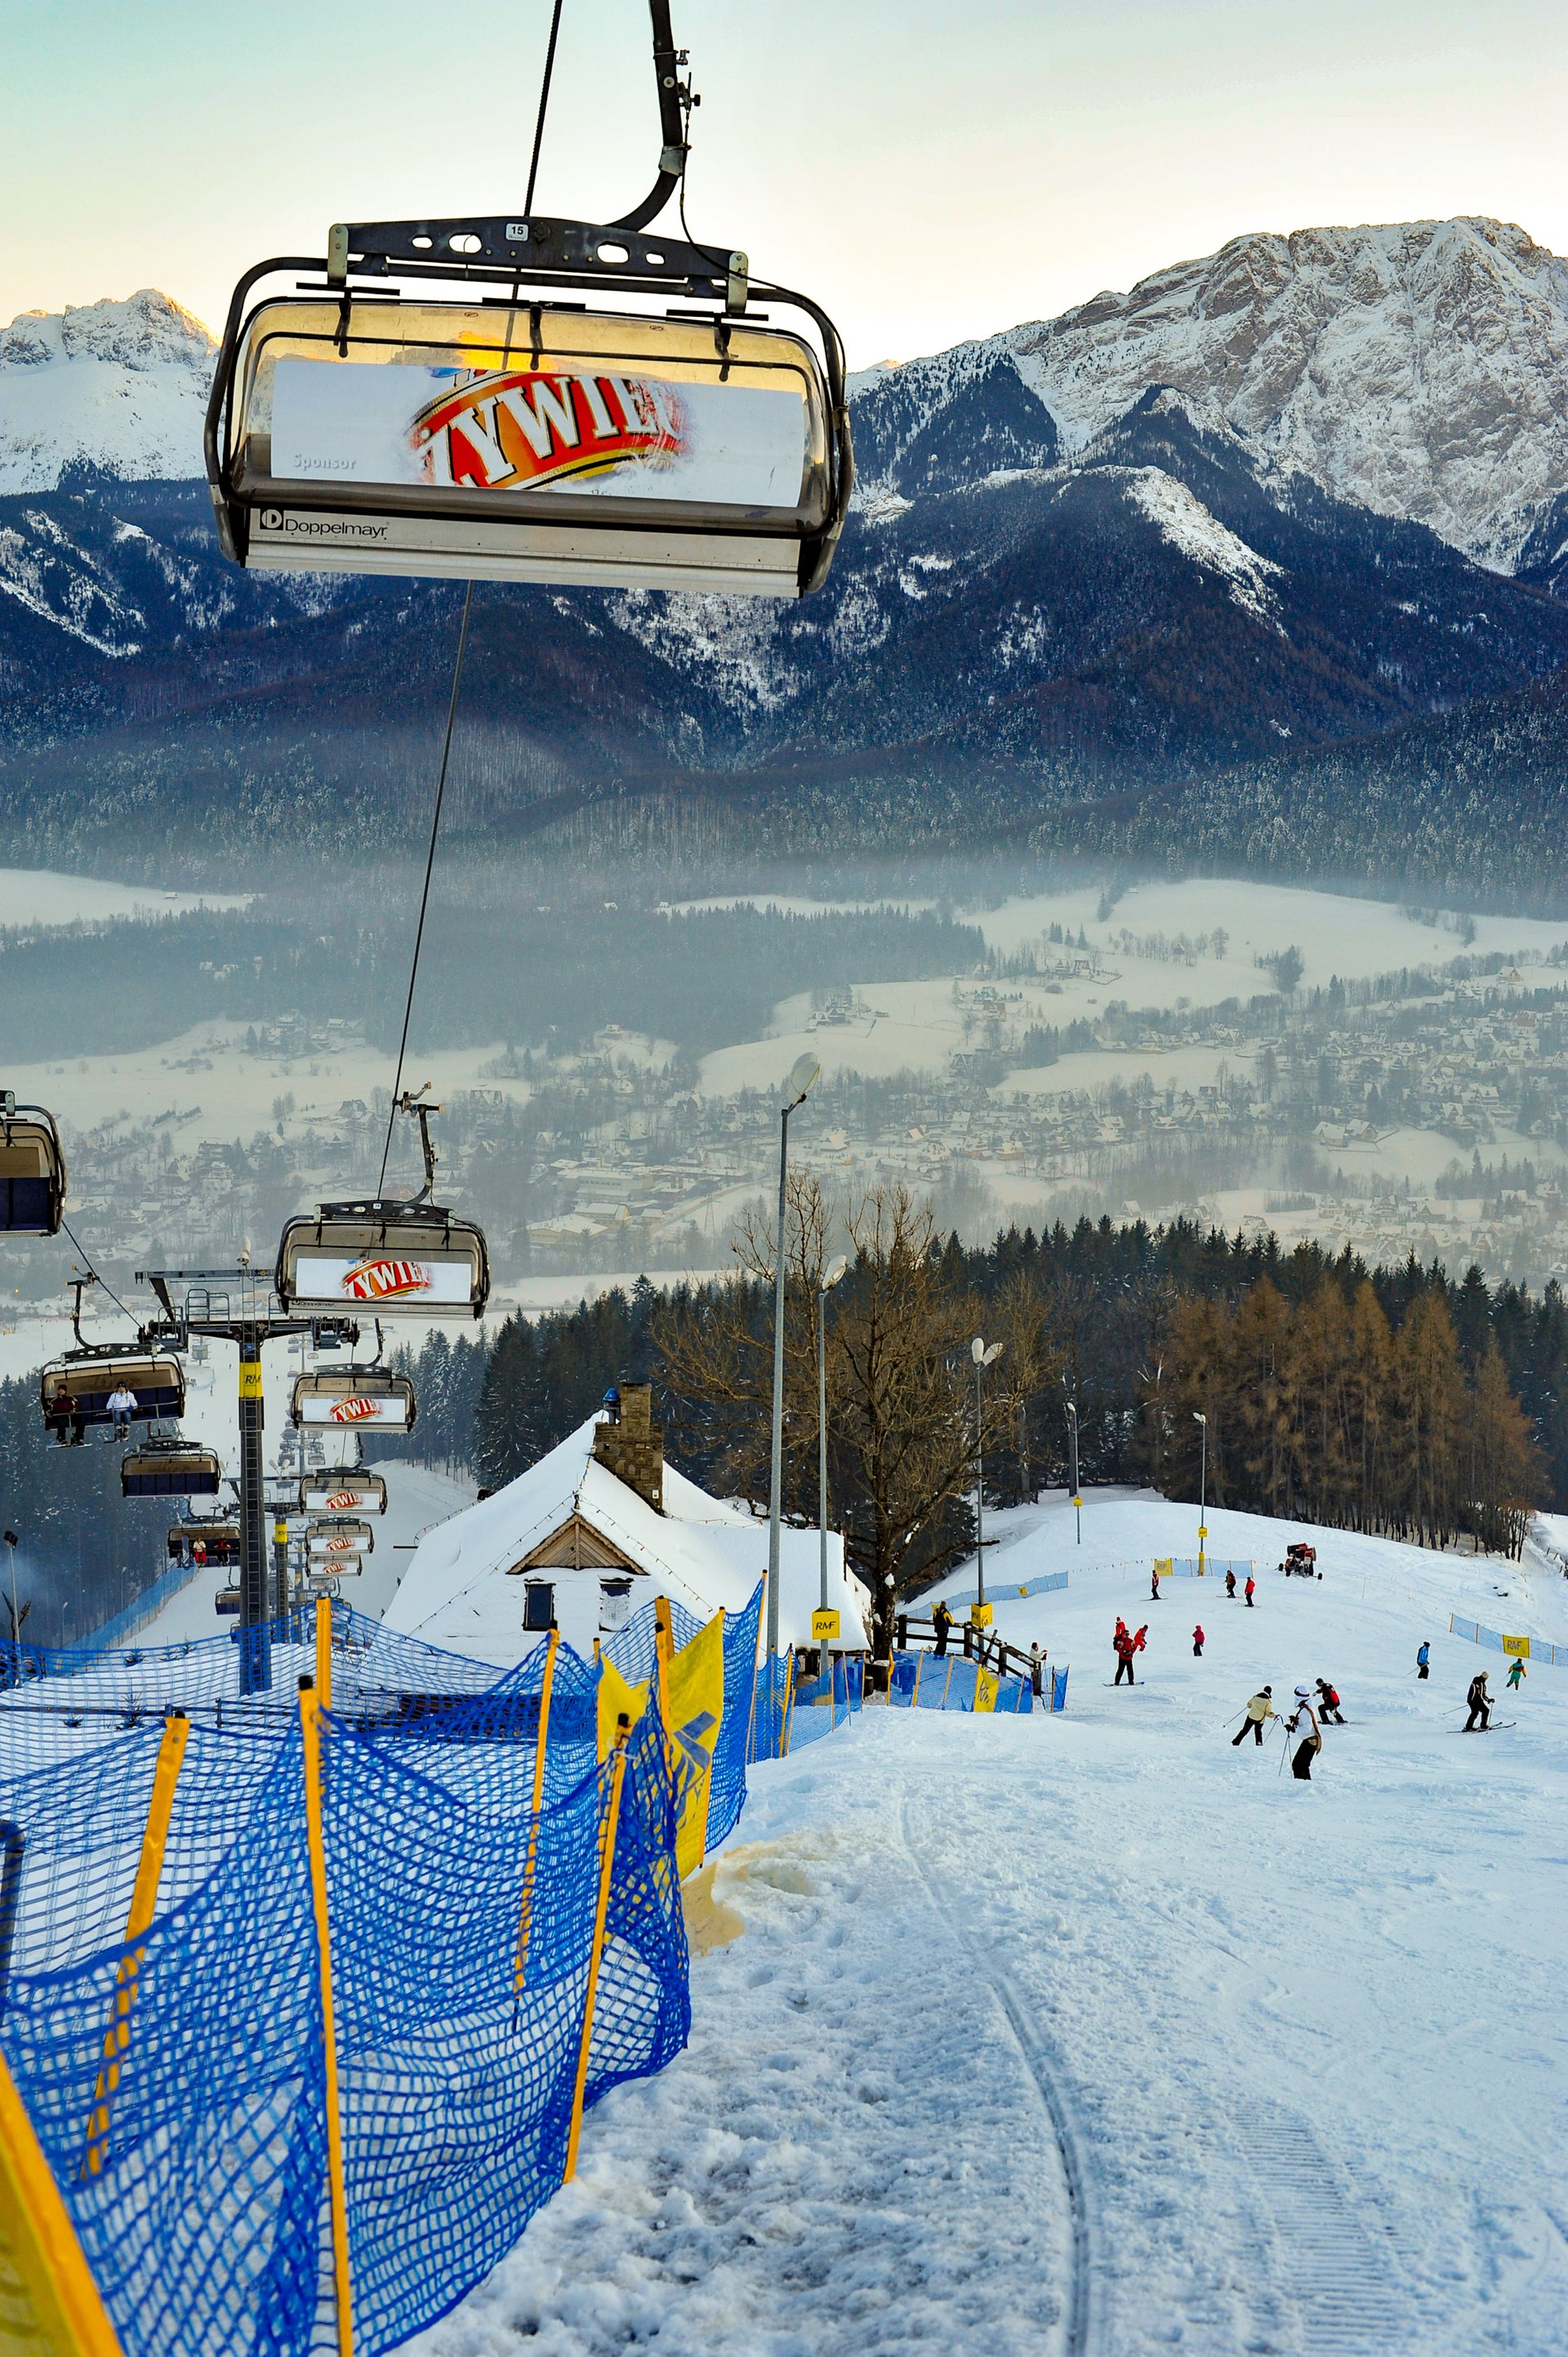 Skiing in Zakopane in Krakow - Best Season 2020